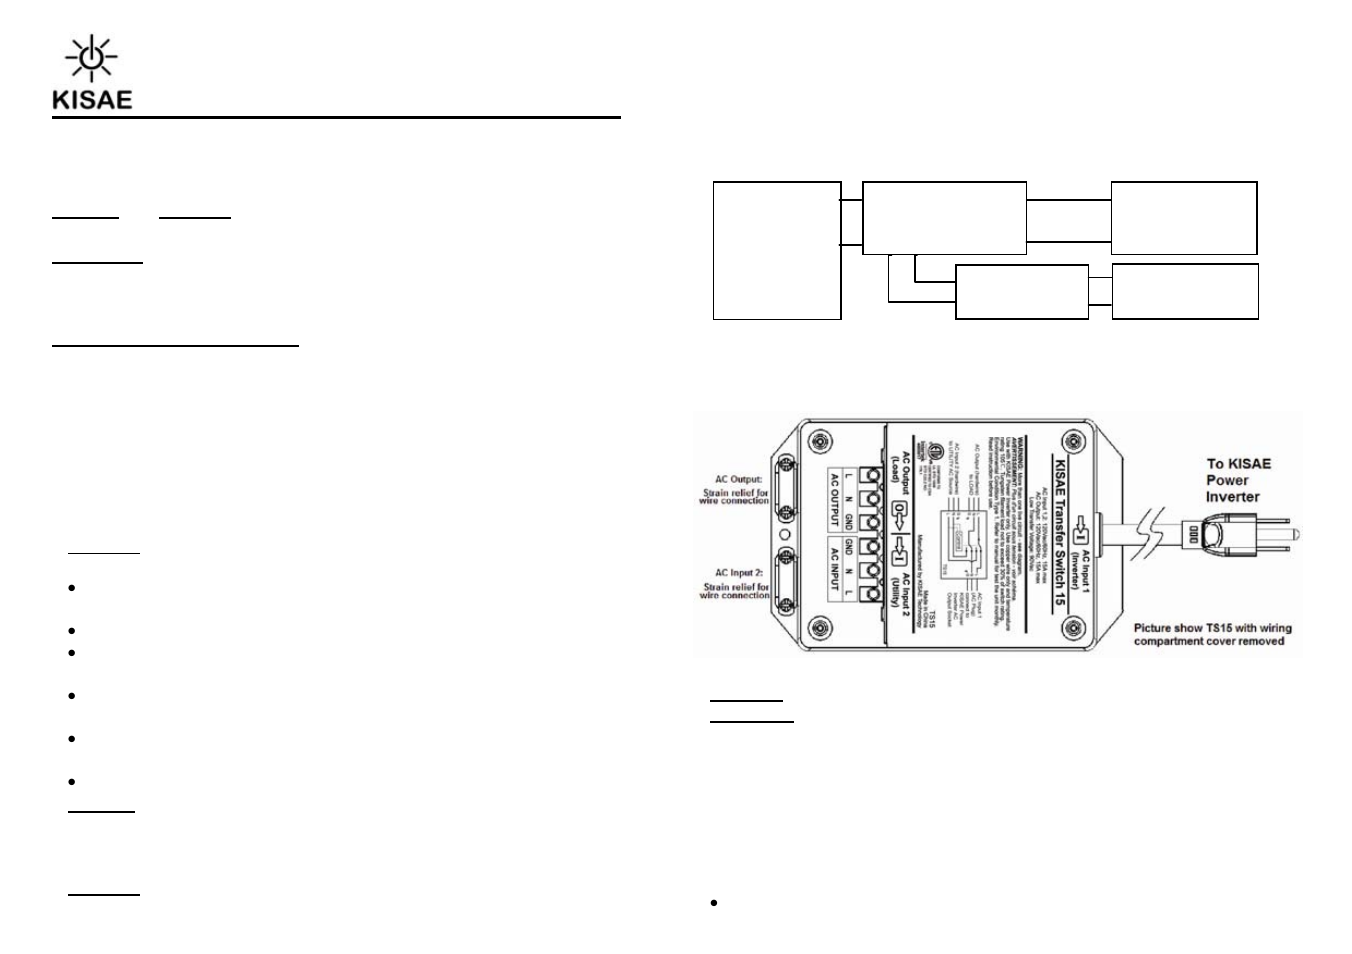 KISAE TS20 Transfer Switch User Manual | 2 pages | Also for: TS15 ...